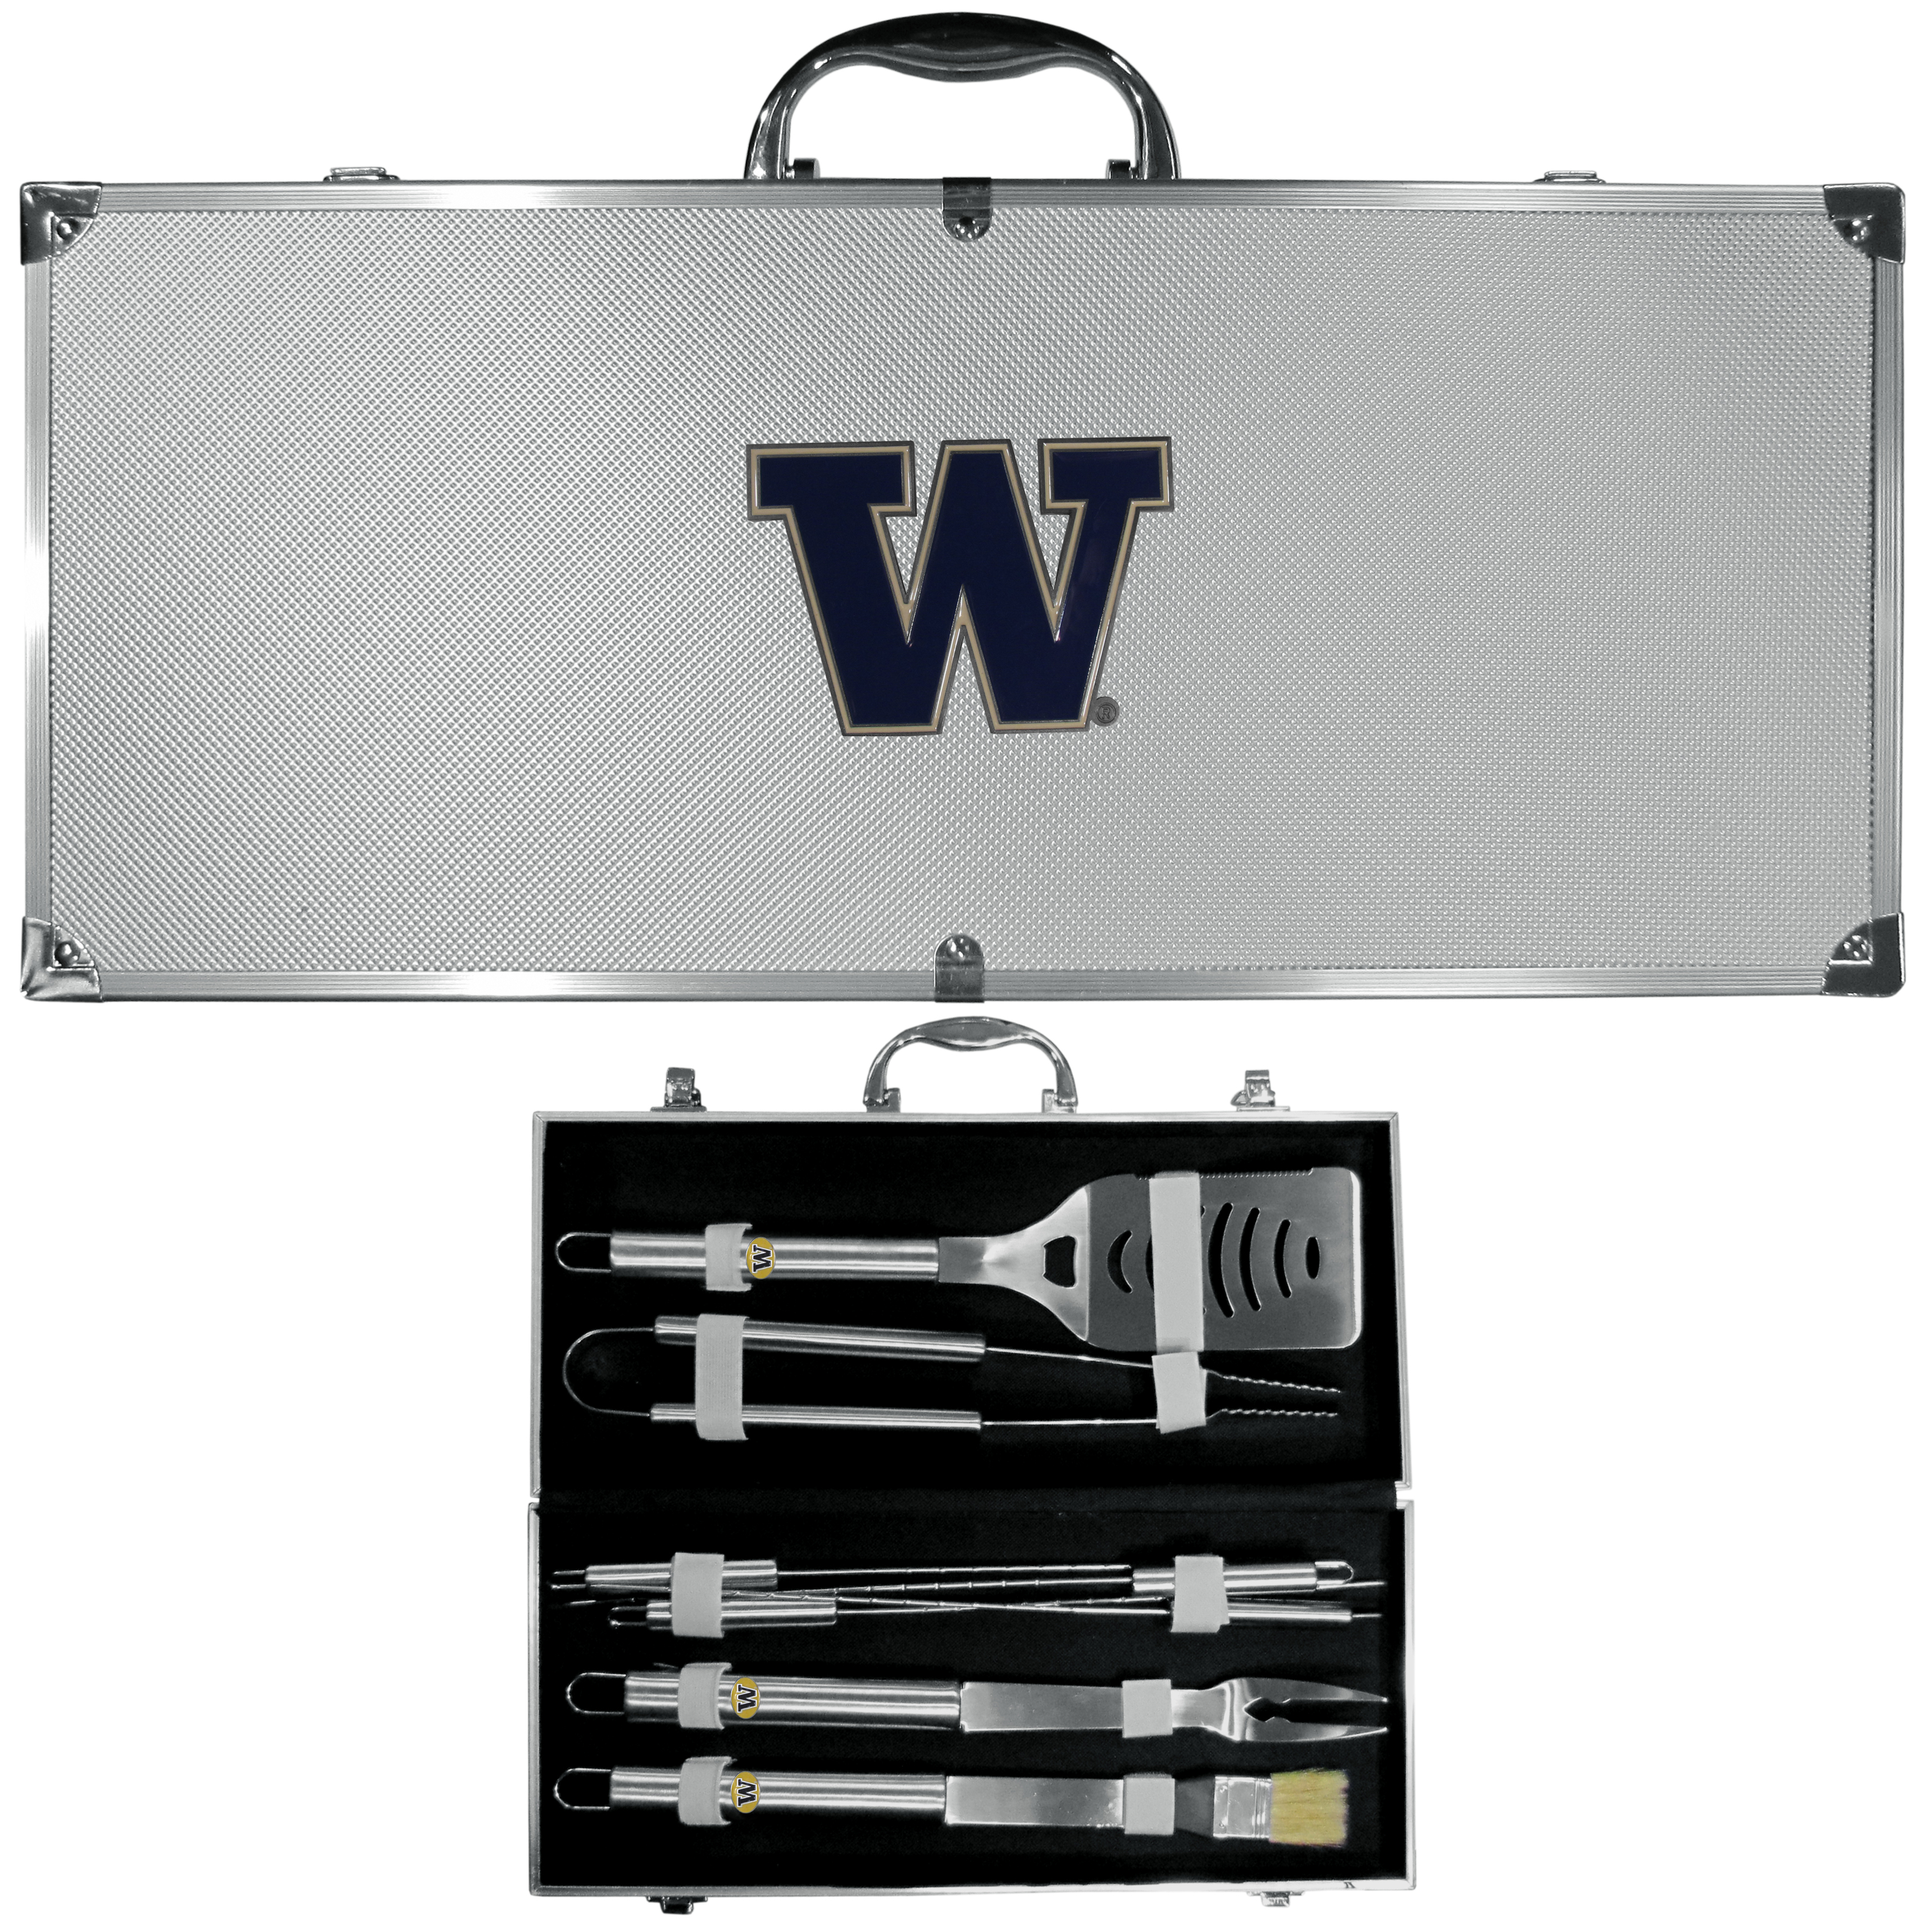 Washington Huskies 8 pc Stainless Steel BBQ Set w/Metal Case - Our 8 pc BBQ set includes a spatula with knife edge, grill fork, tongs, basting brush and 4 skewers. The tools are approximately 19 inch long and have sturdy stainless steel handles. The aluminum carrying case features a metal carved Washington Huskies emblem with enameled finish.